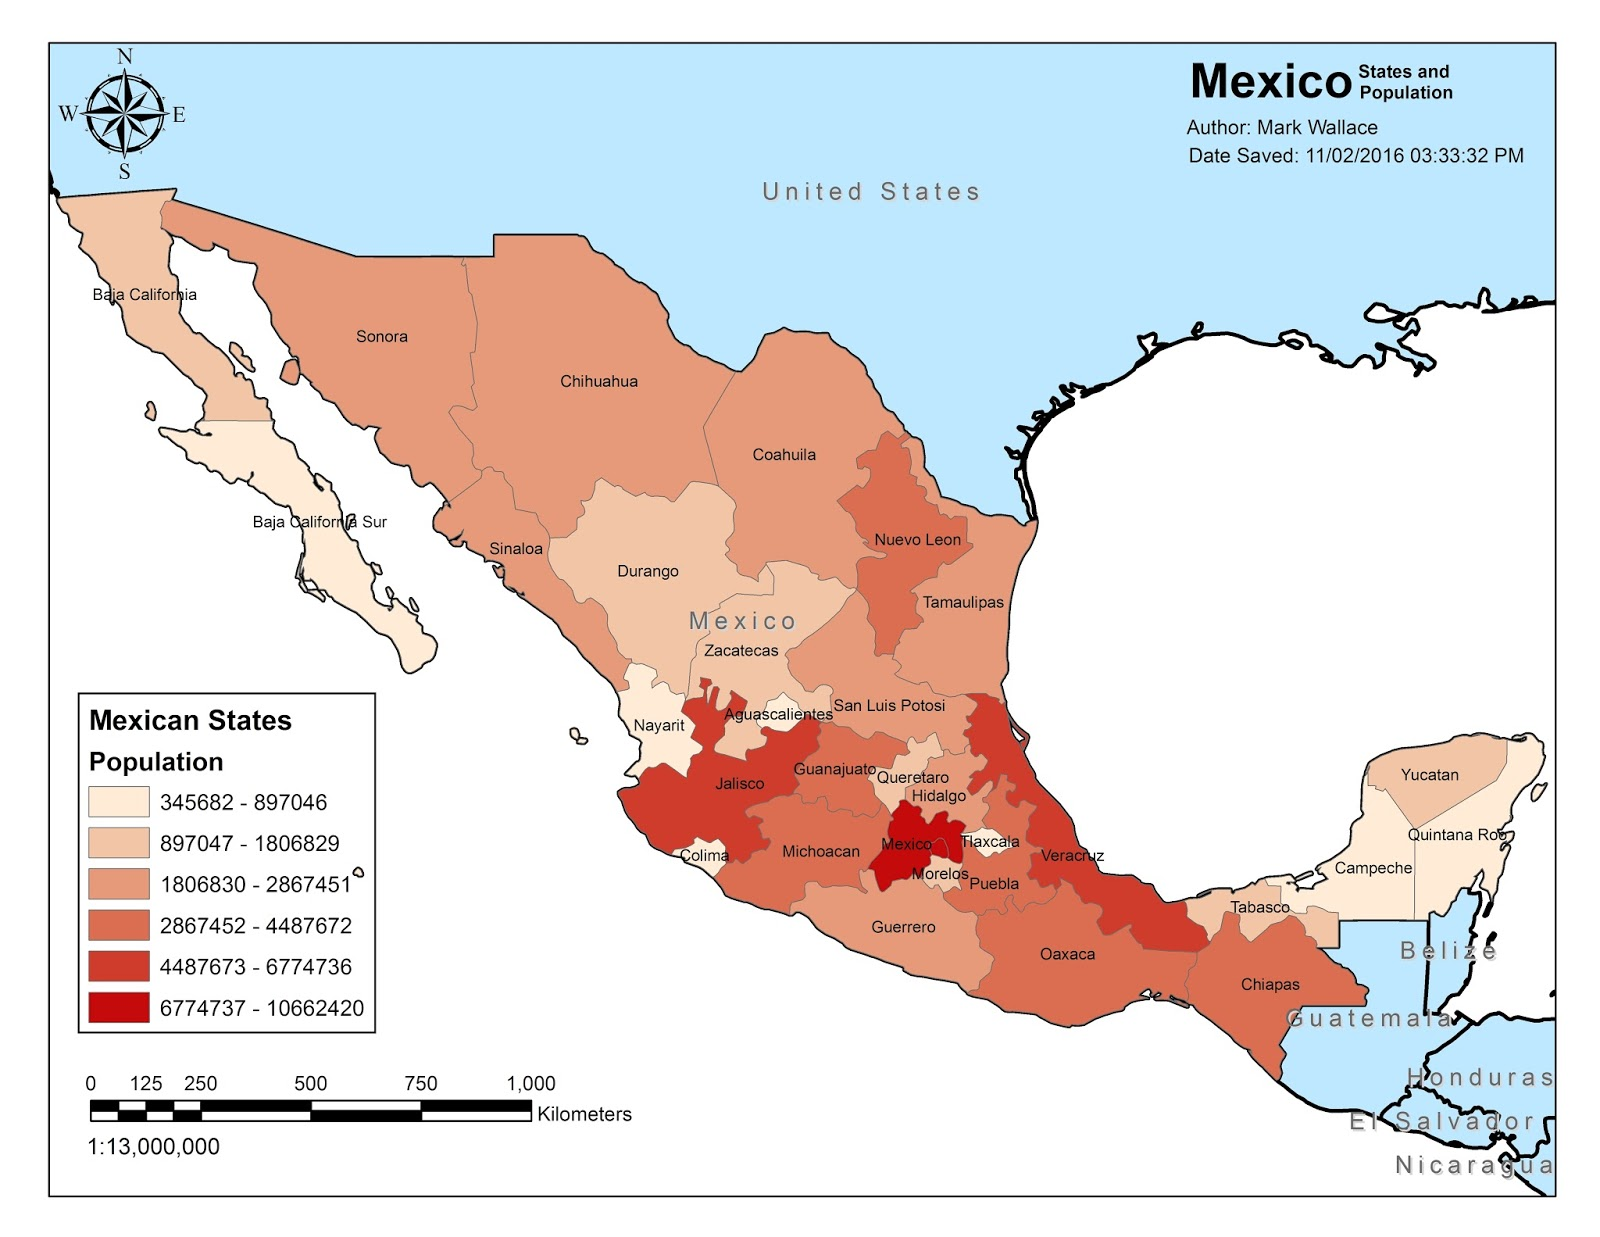 map 1 map of mexico showing mexican states and population data for states a standard compass in the upper left displays the north bearing